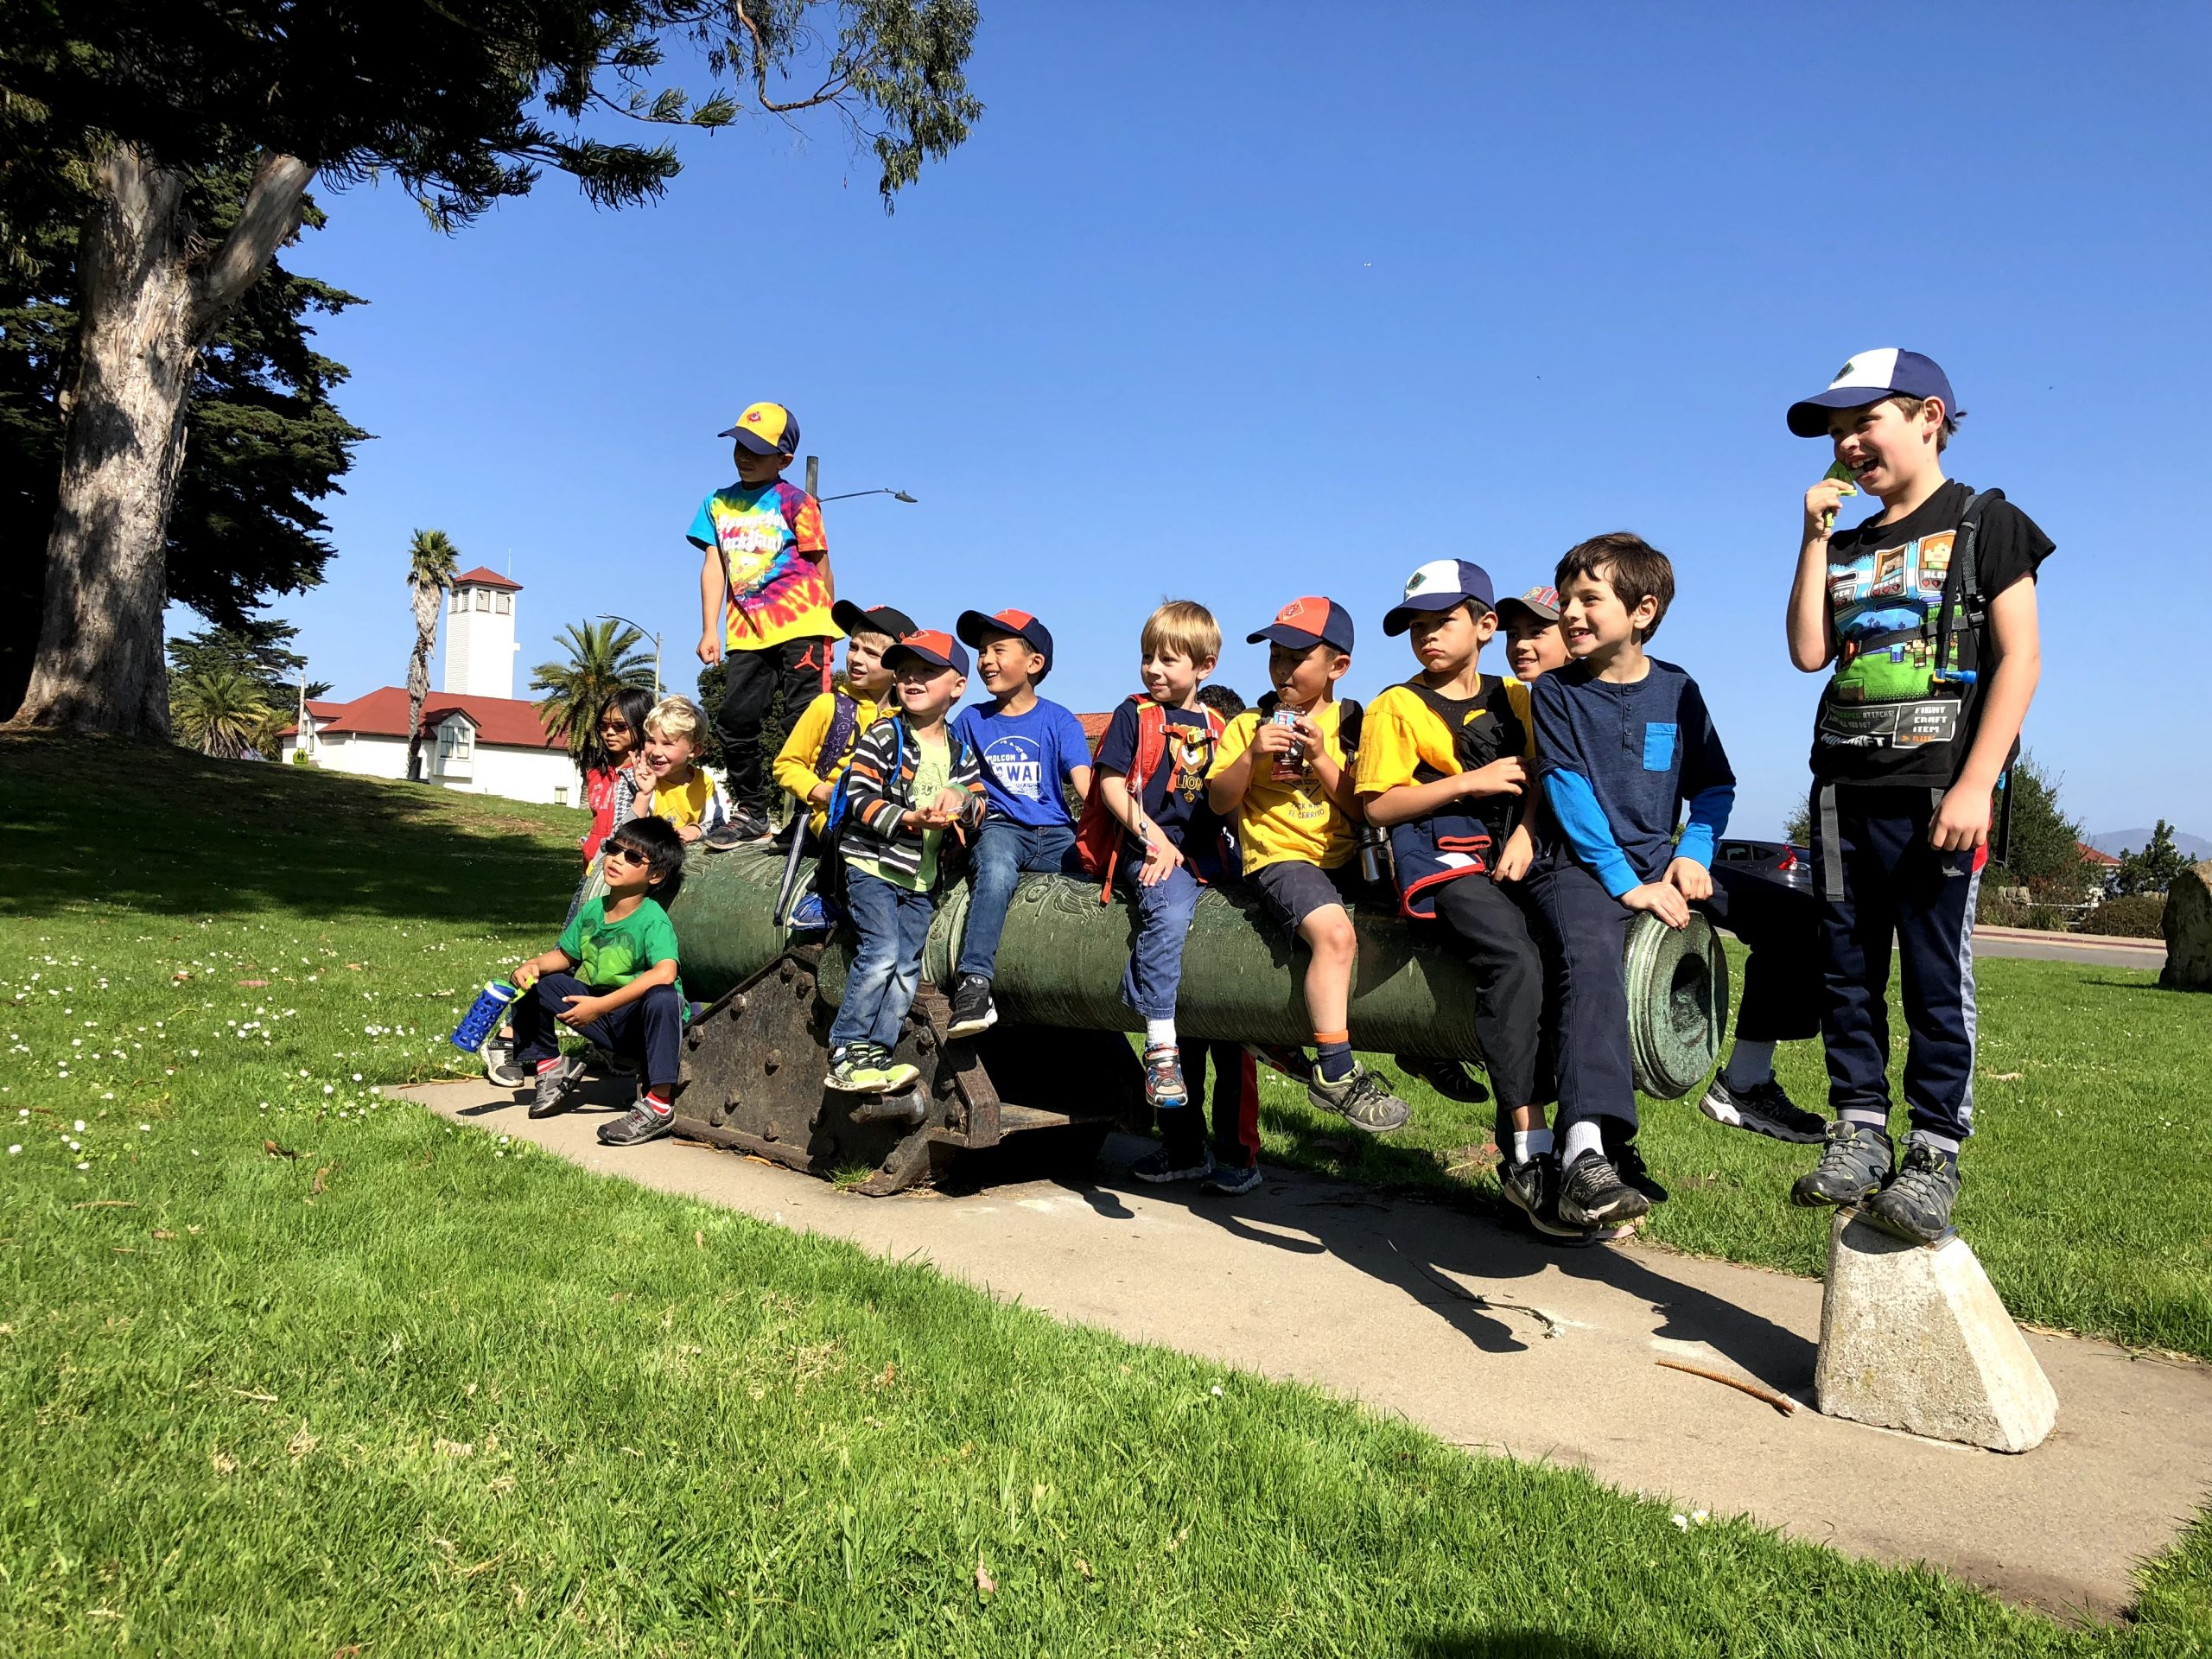 Group photo of cub scouts sitting on a historical cannon at the Presidio